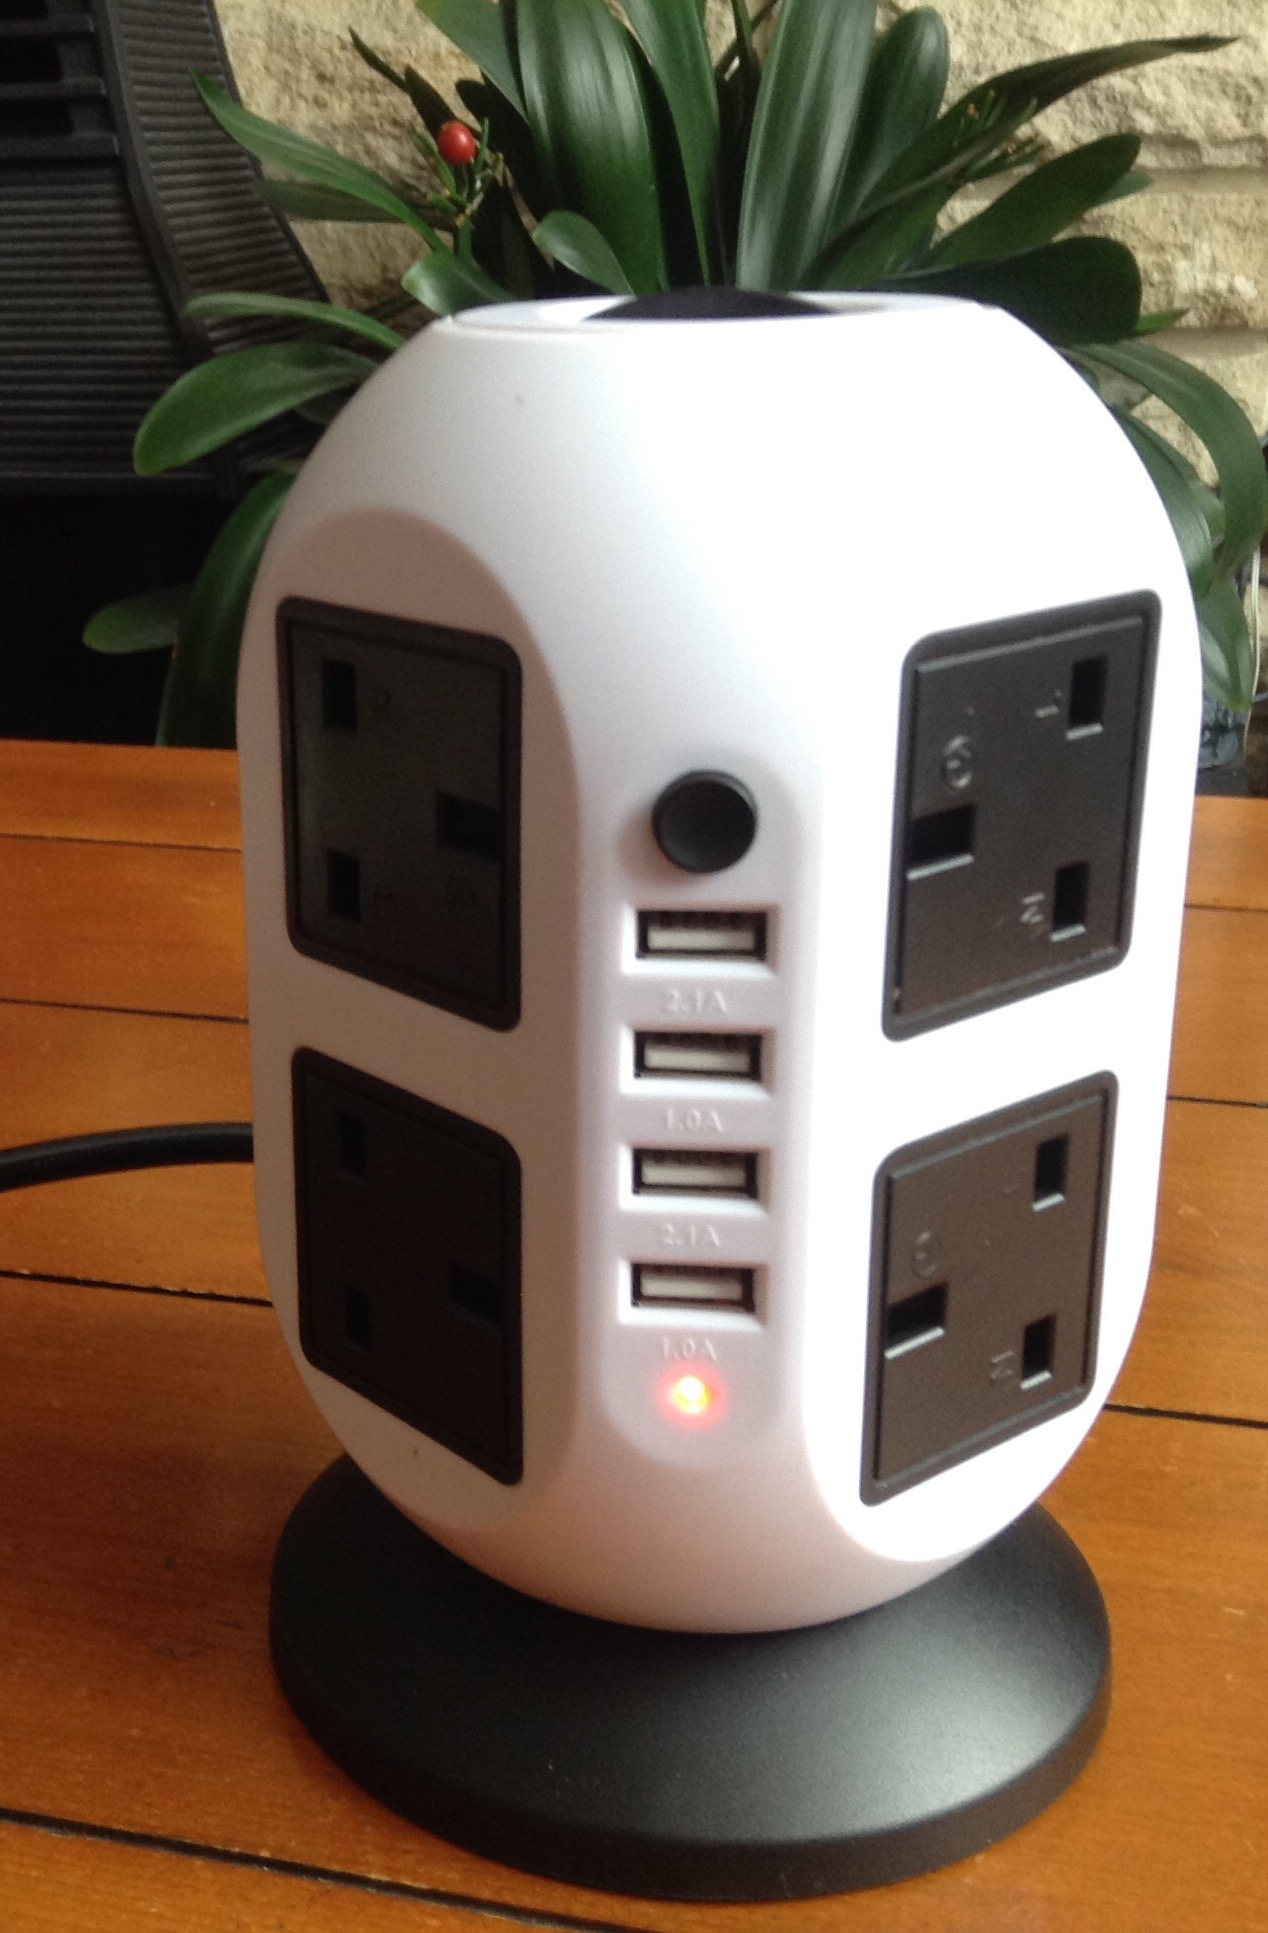 A Sturdy Multi-Socket Tower with 4 USB Output Ports